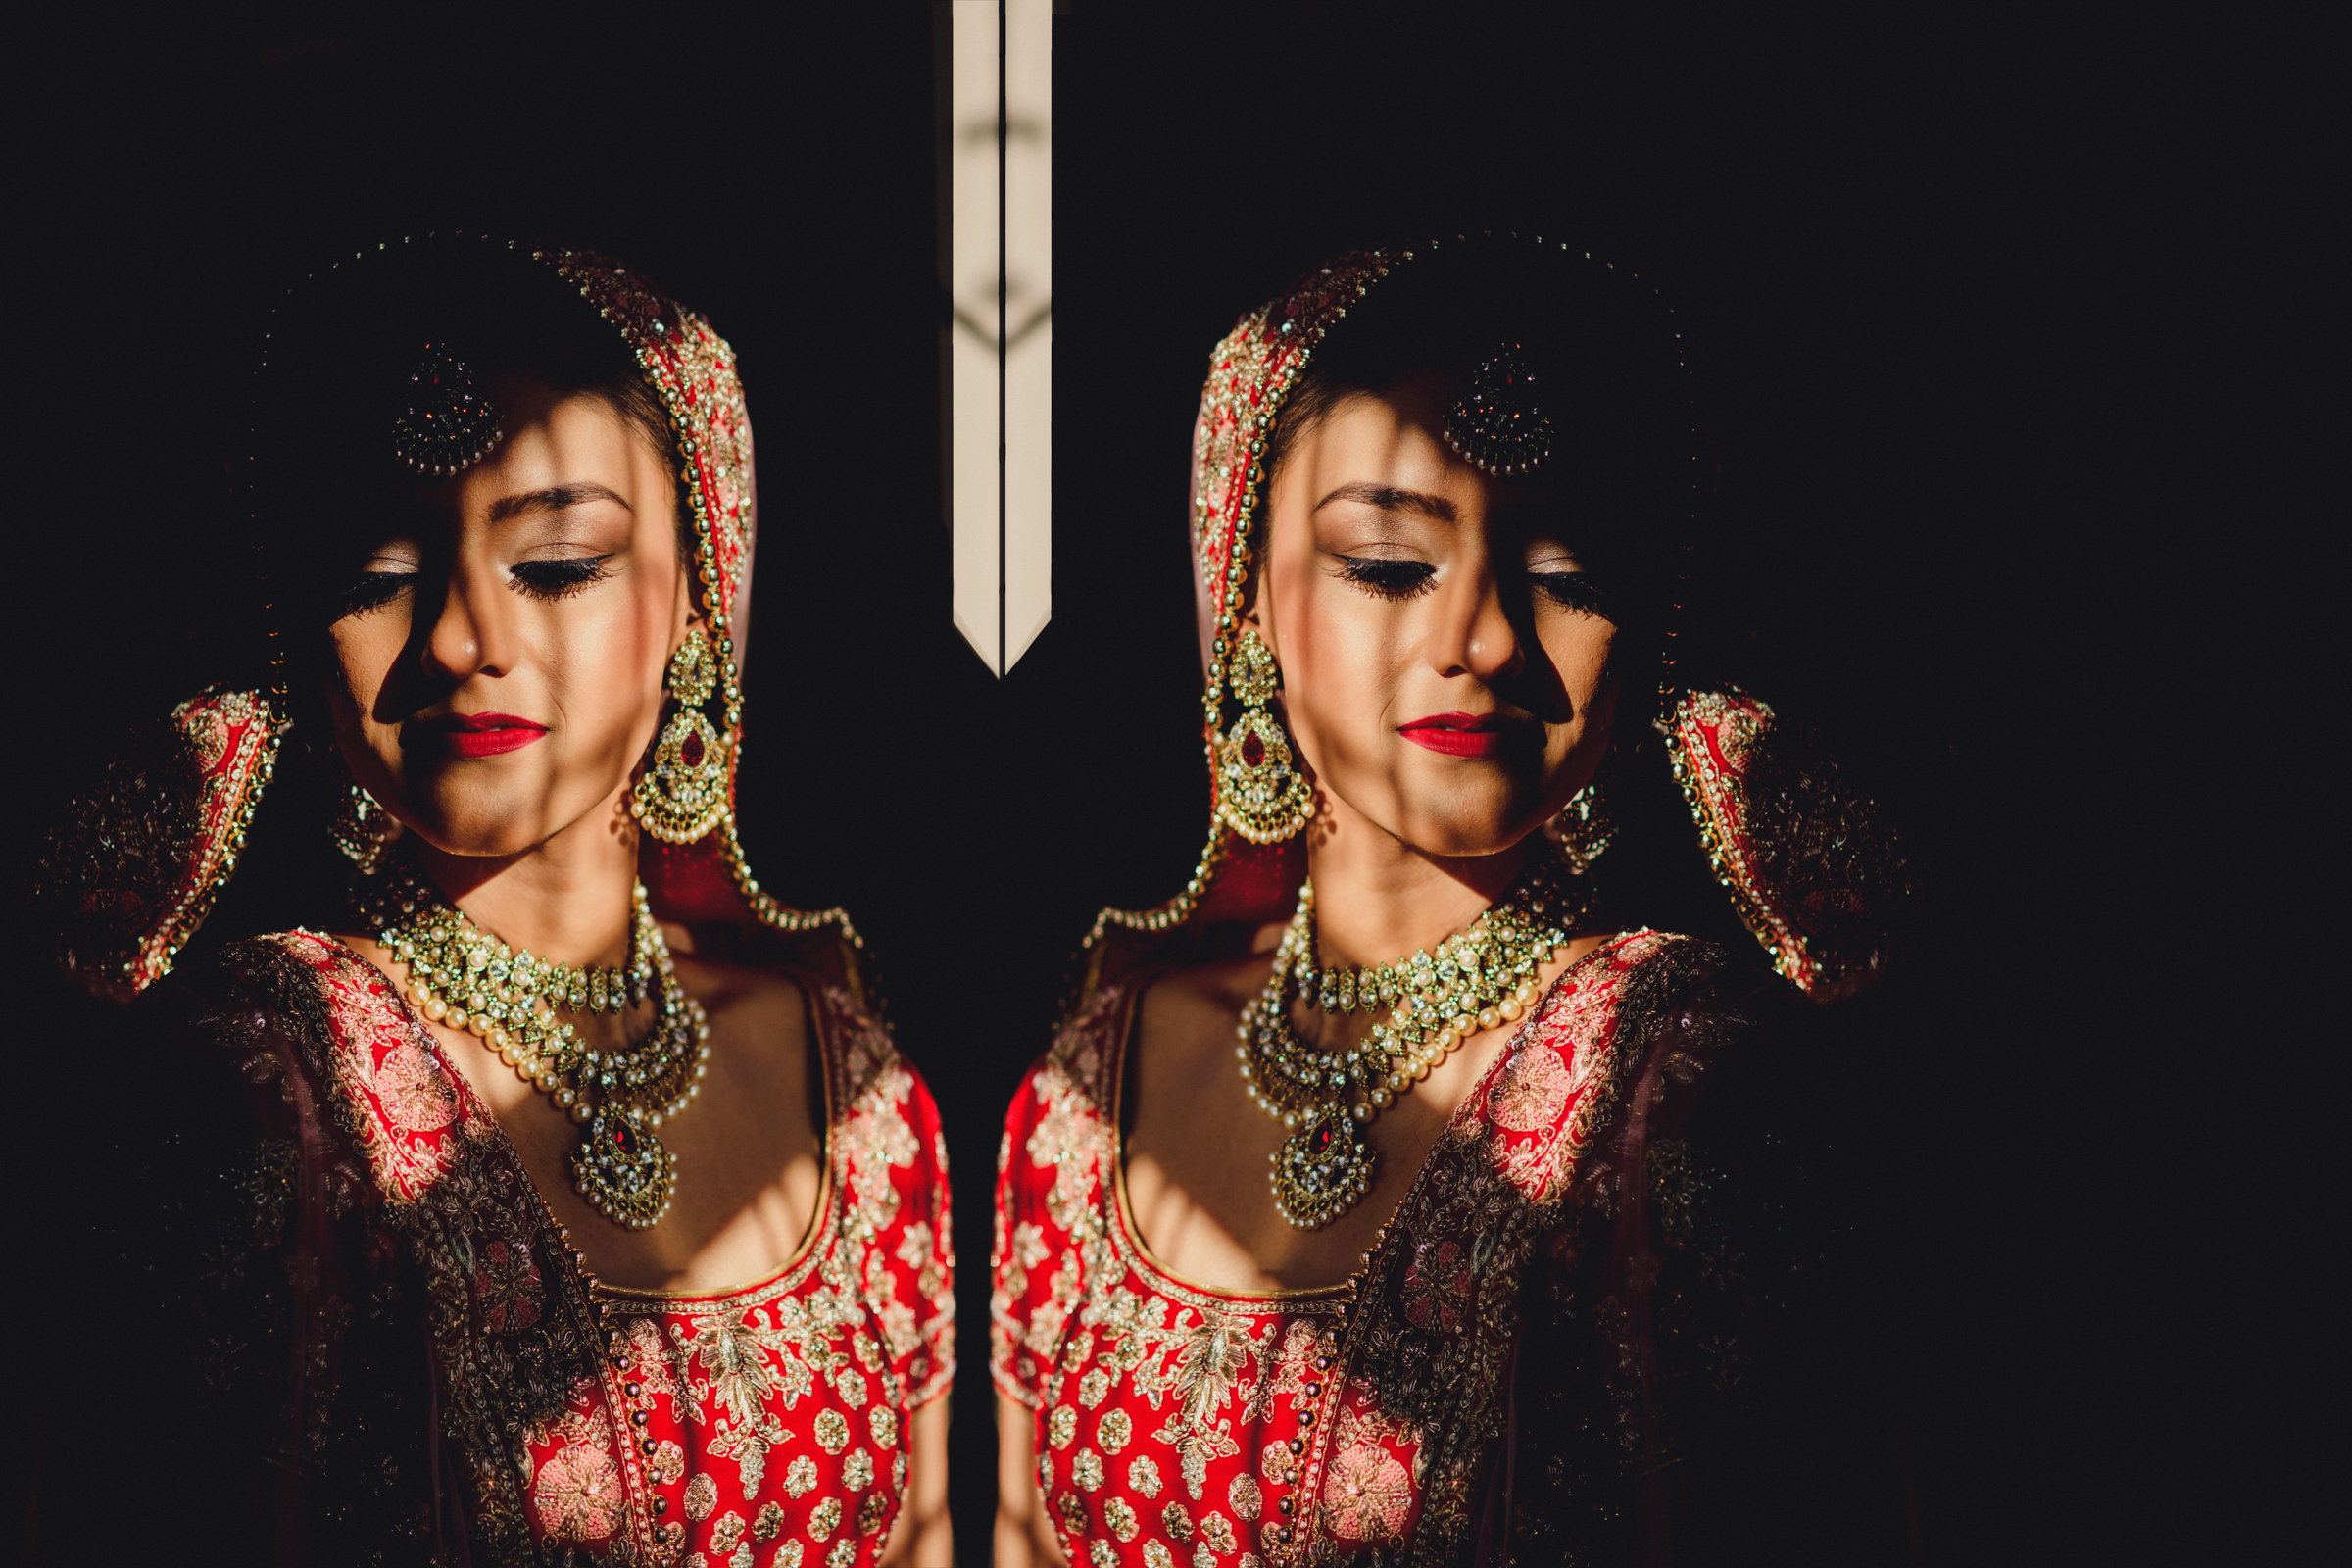 mirrored-photo-of-indian-bride-in-red-and-gold-photo-by-miki-studios